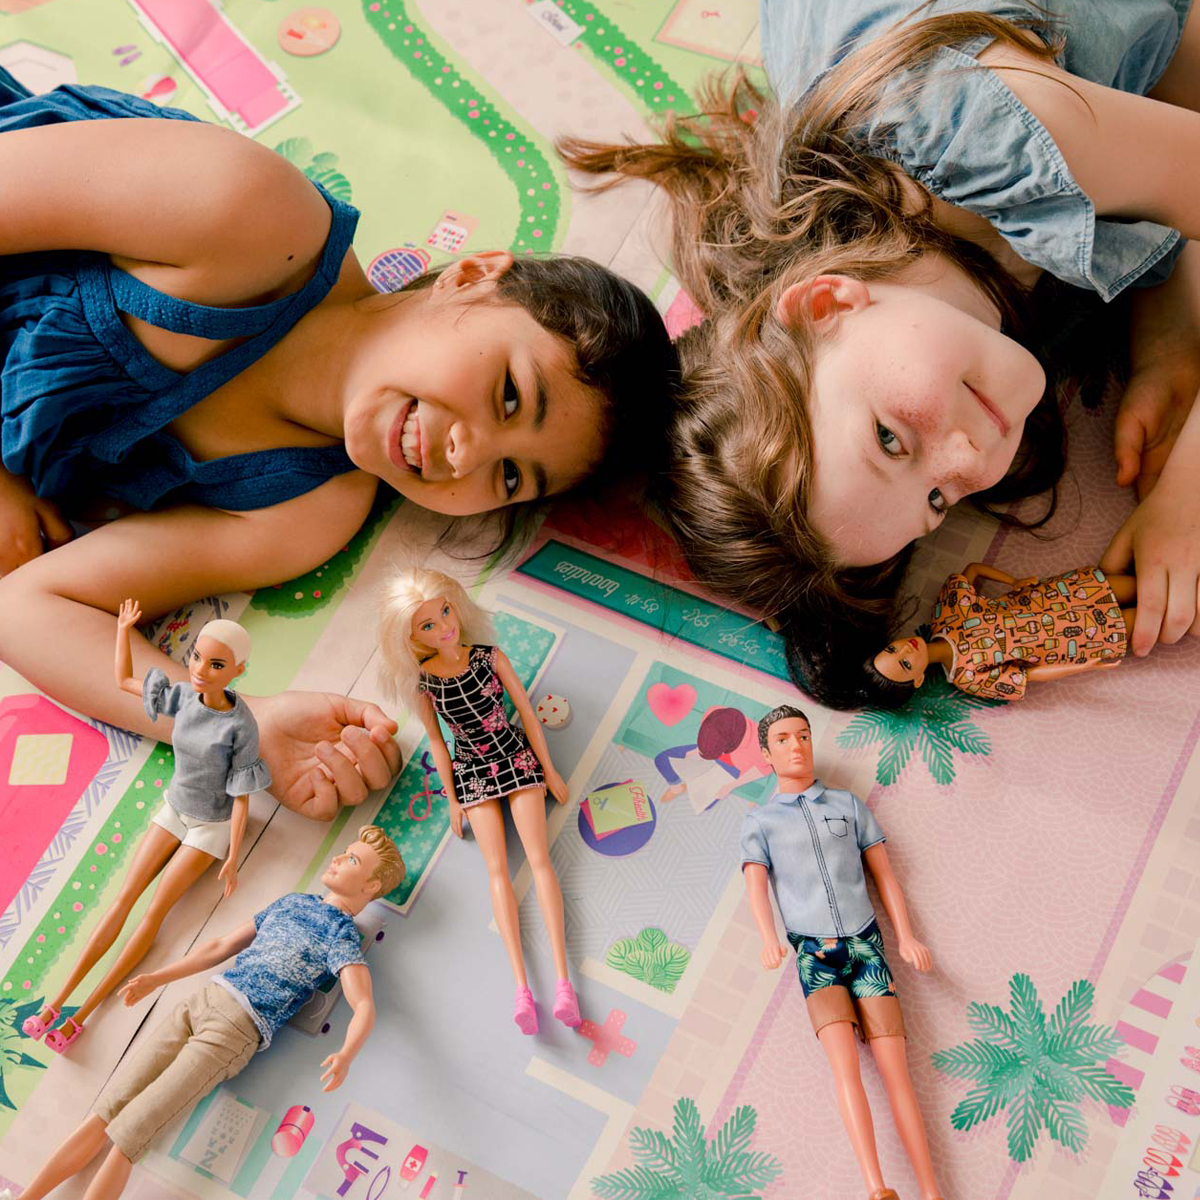 Boardies Natural Rubber Printed Play Mat in Dollhouse with girls